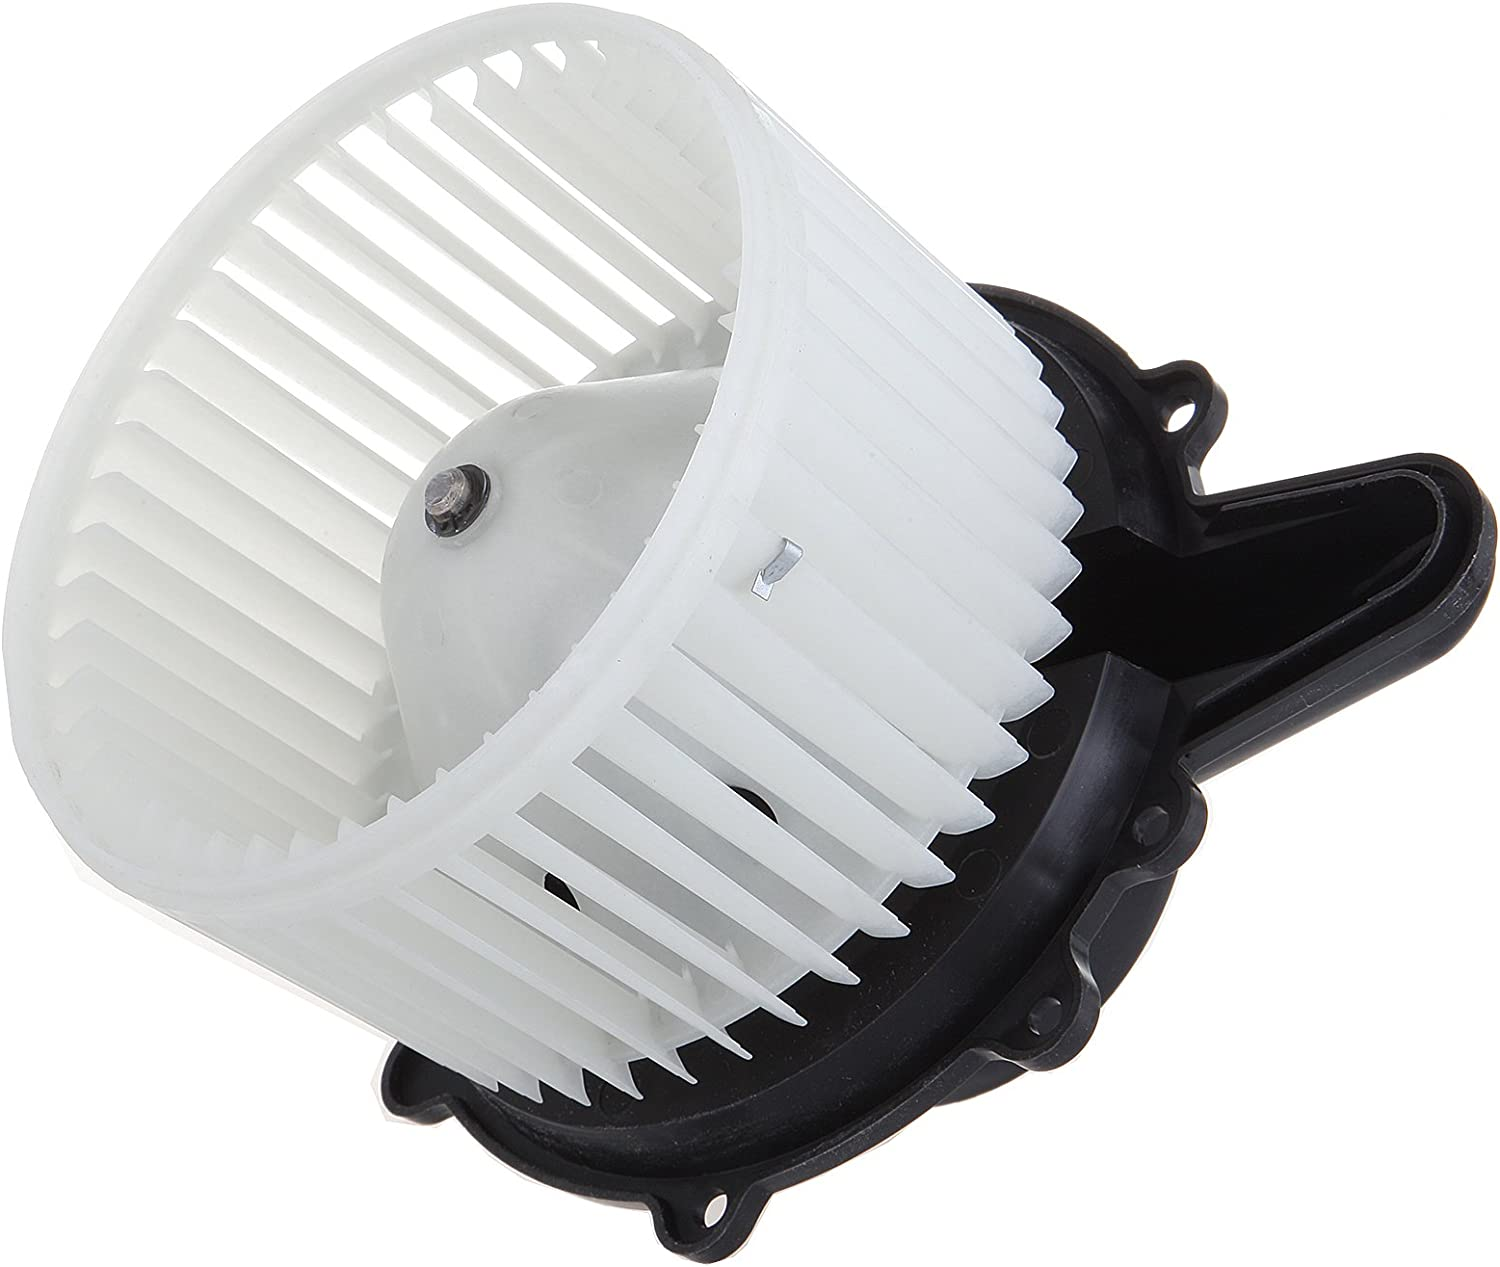 TUPARTS AC 4 years warranty Conditioning Max 83% OFF Heater Blower Motors With Motor HVAC Fan